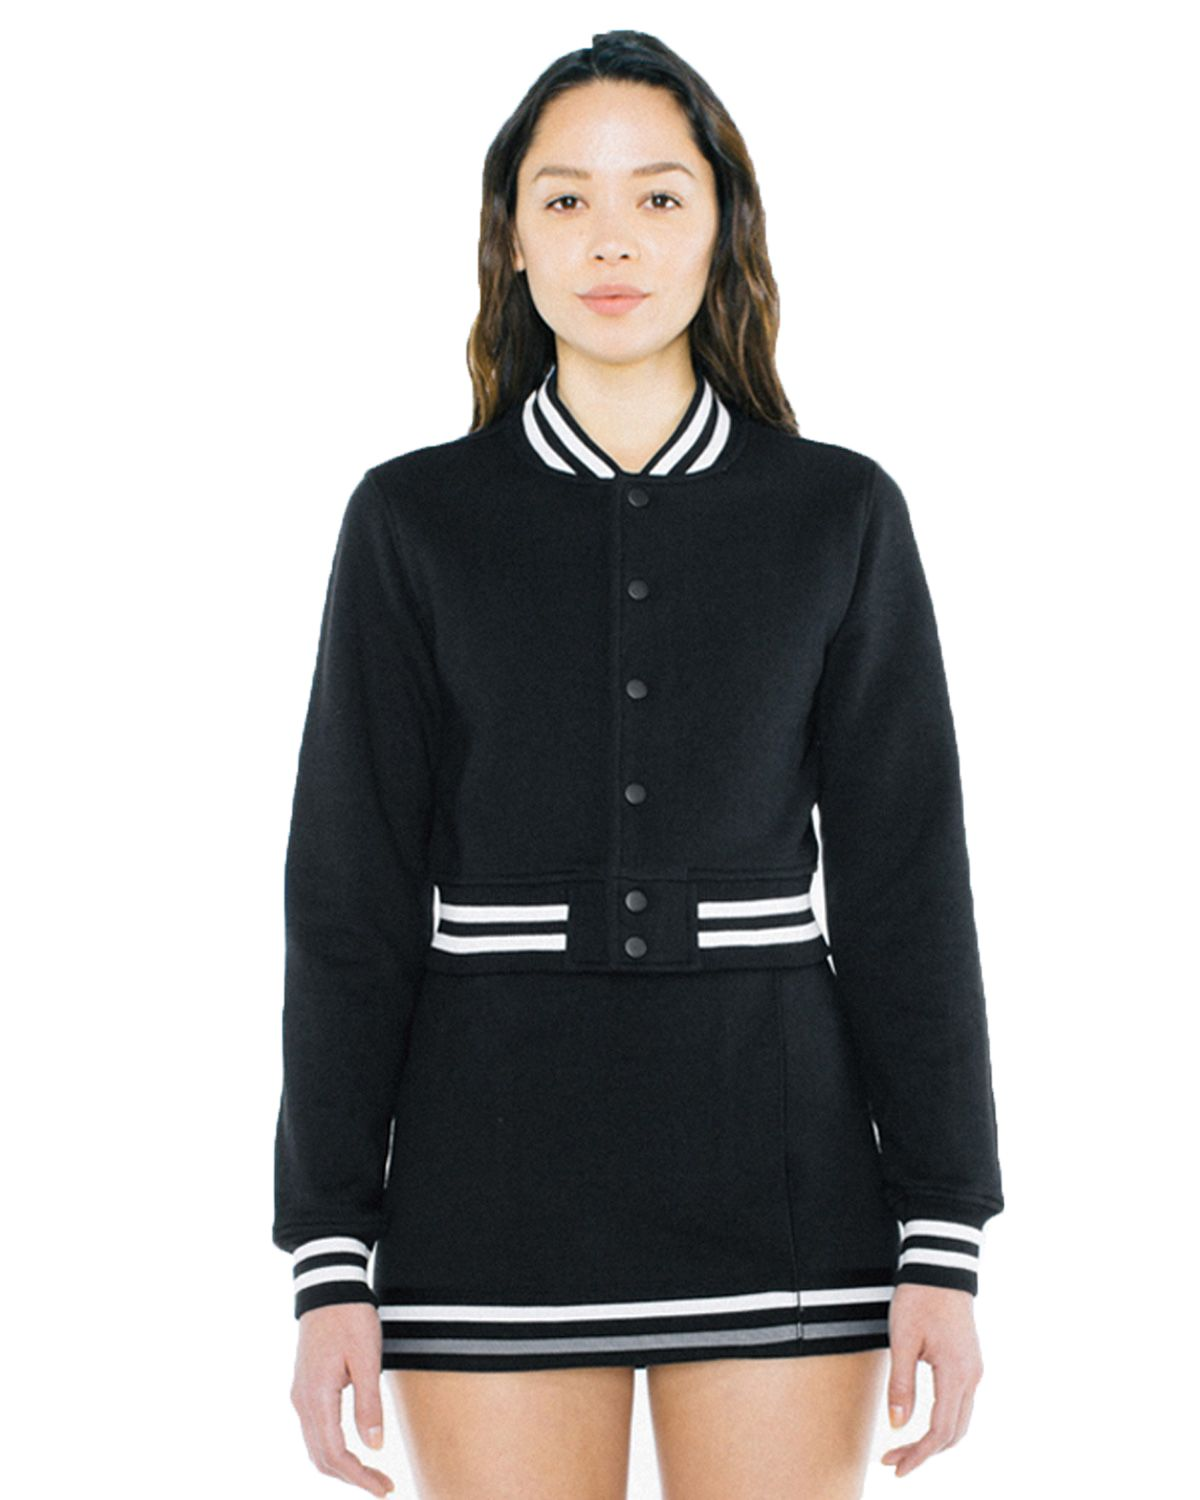 American Apparel VT3529W Women's Heavy Terry Cropped Club Jacket